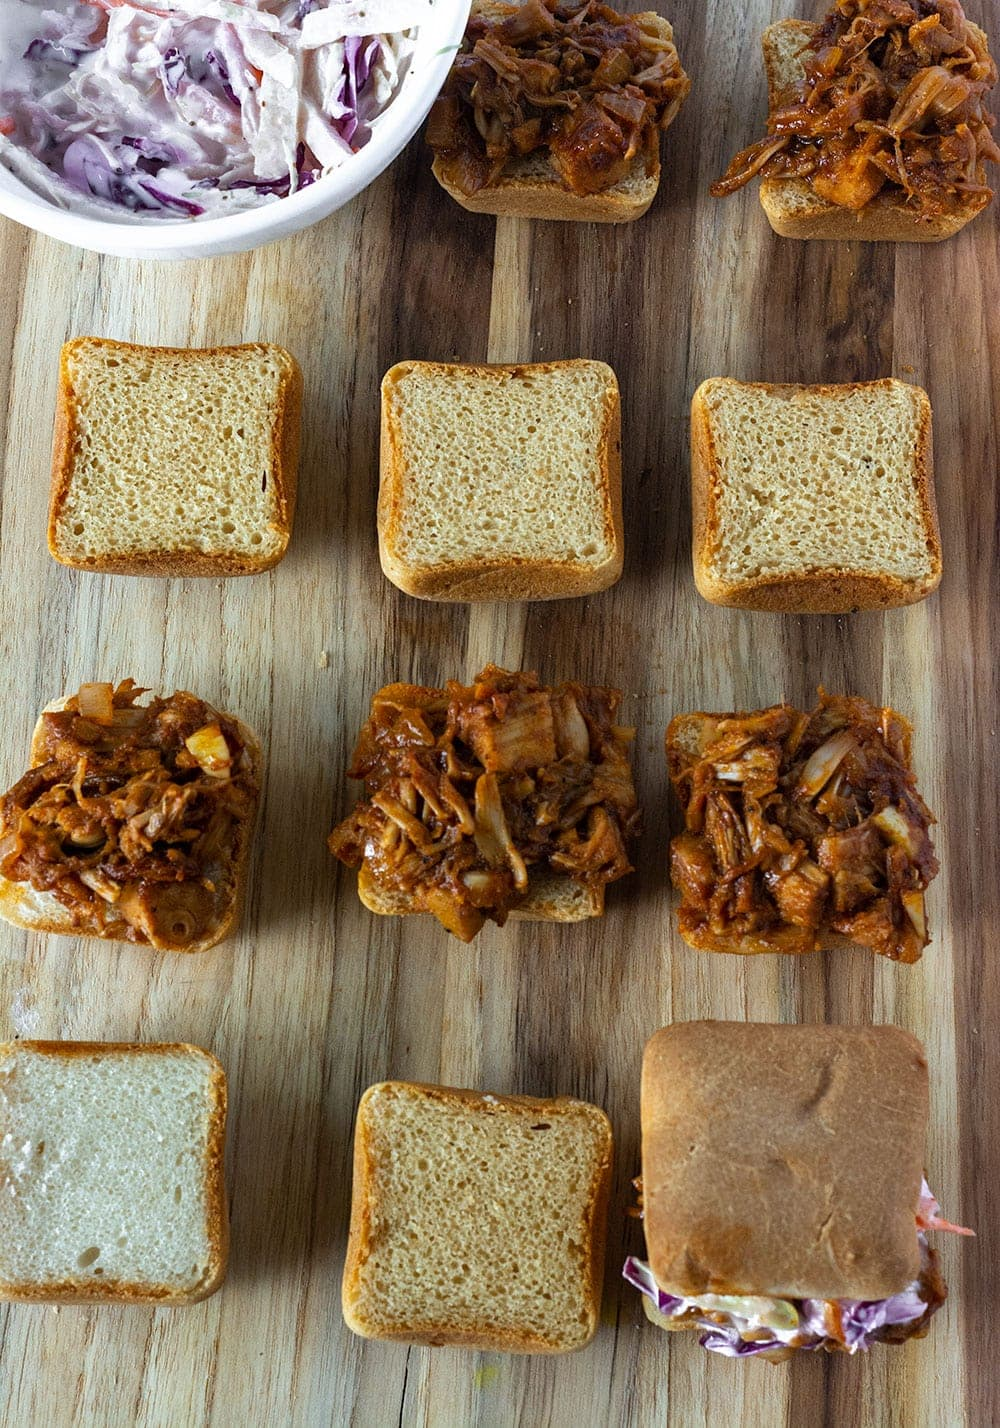 Jackfruit BBQ Sandwiches being assembled on cutting board with pulled jackfruit, rolls and coleslaw